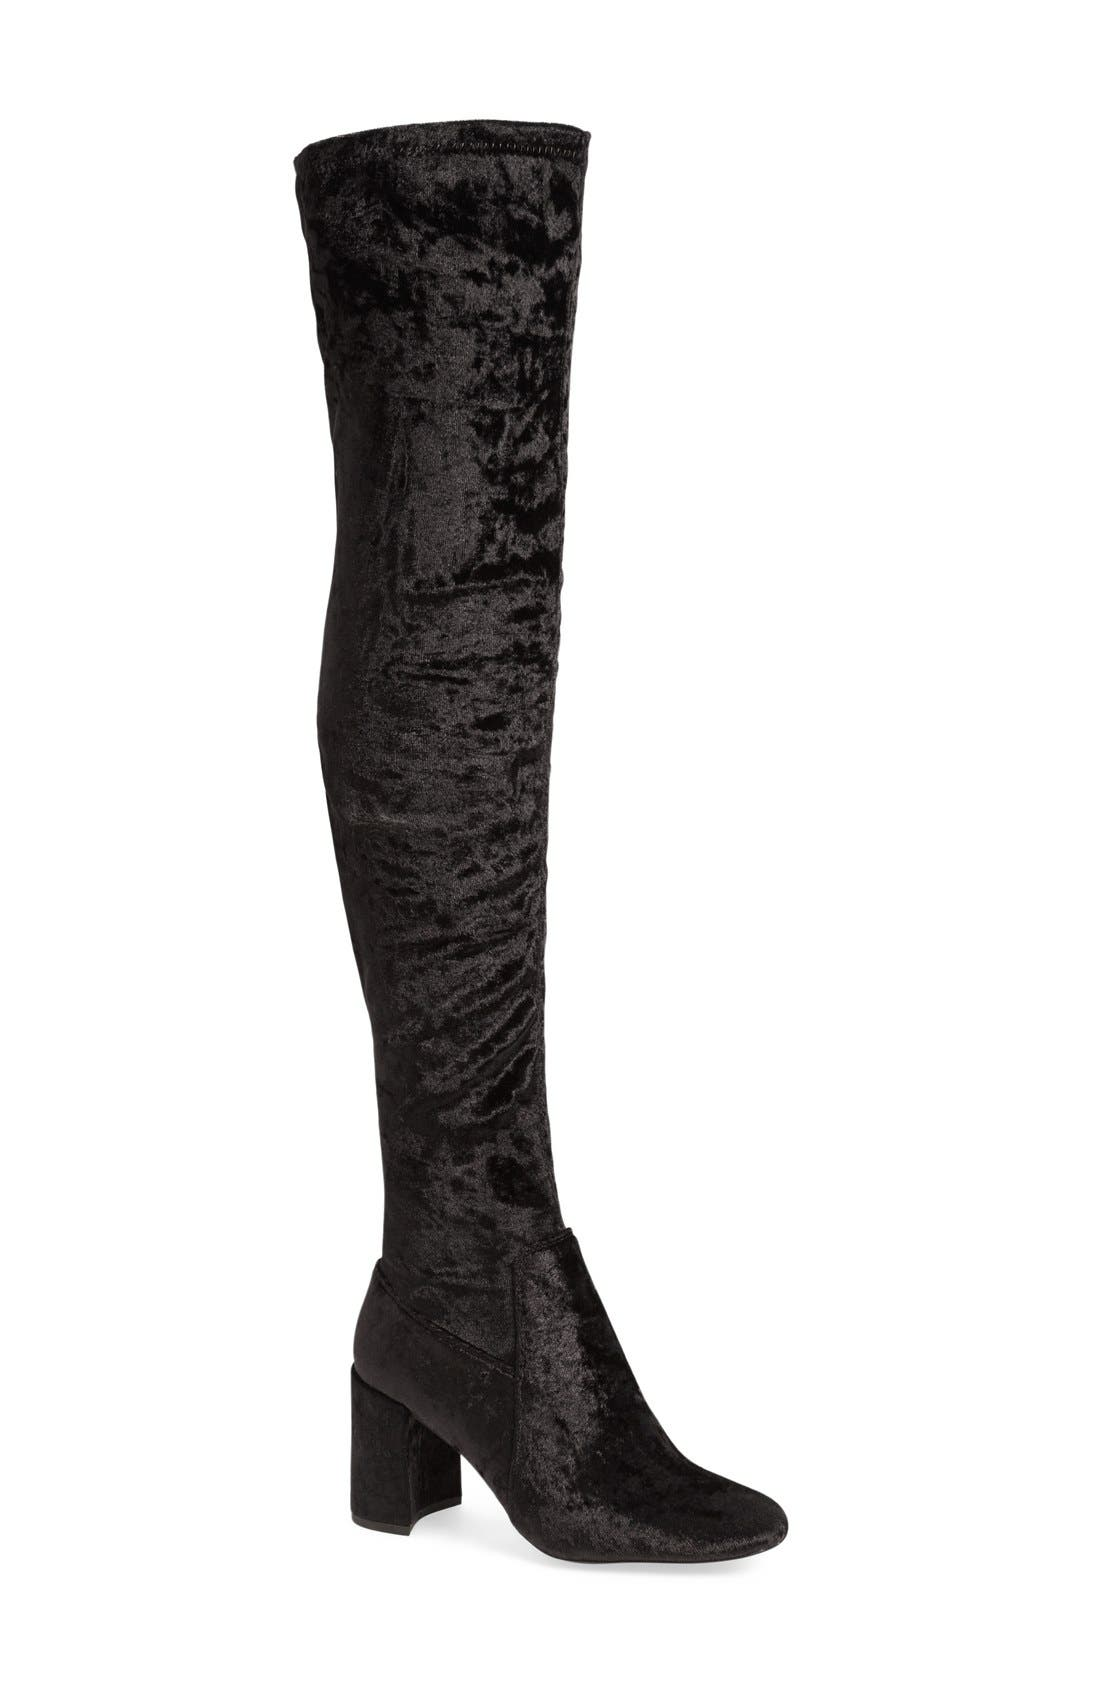 JEFFREY CAMPBELL, 'Cienega' Over the Knee Boot, Main thumbnail 1, color, 001